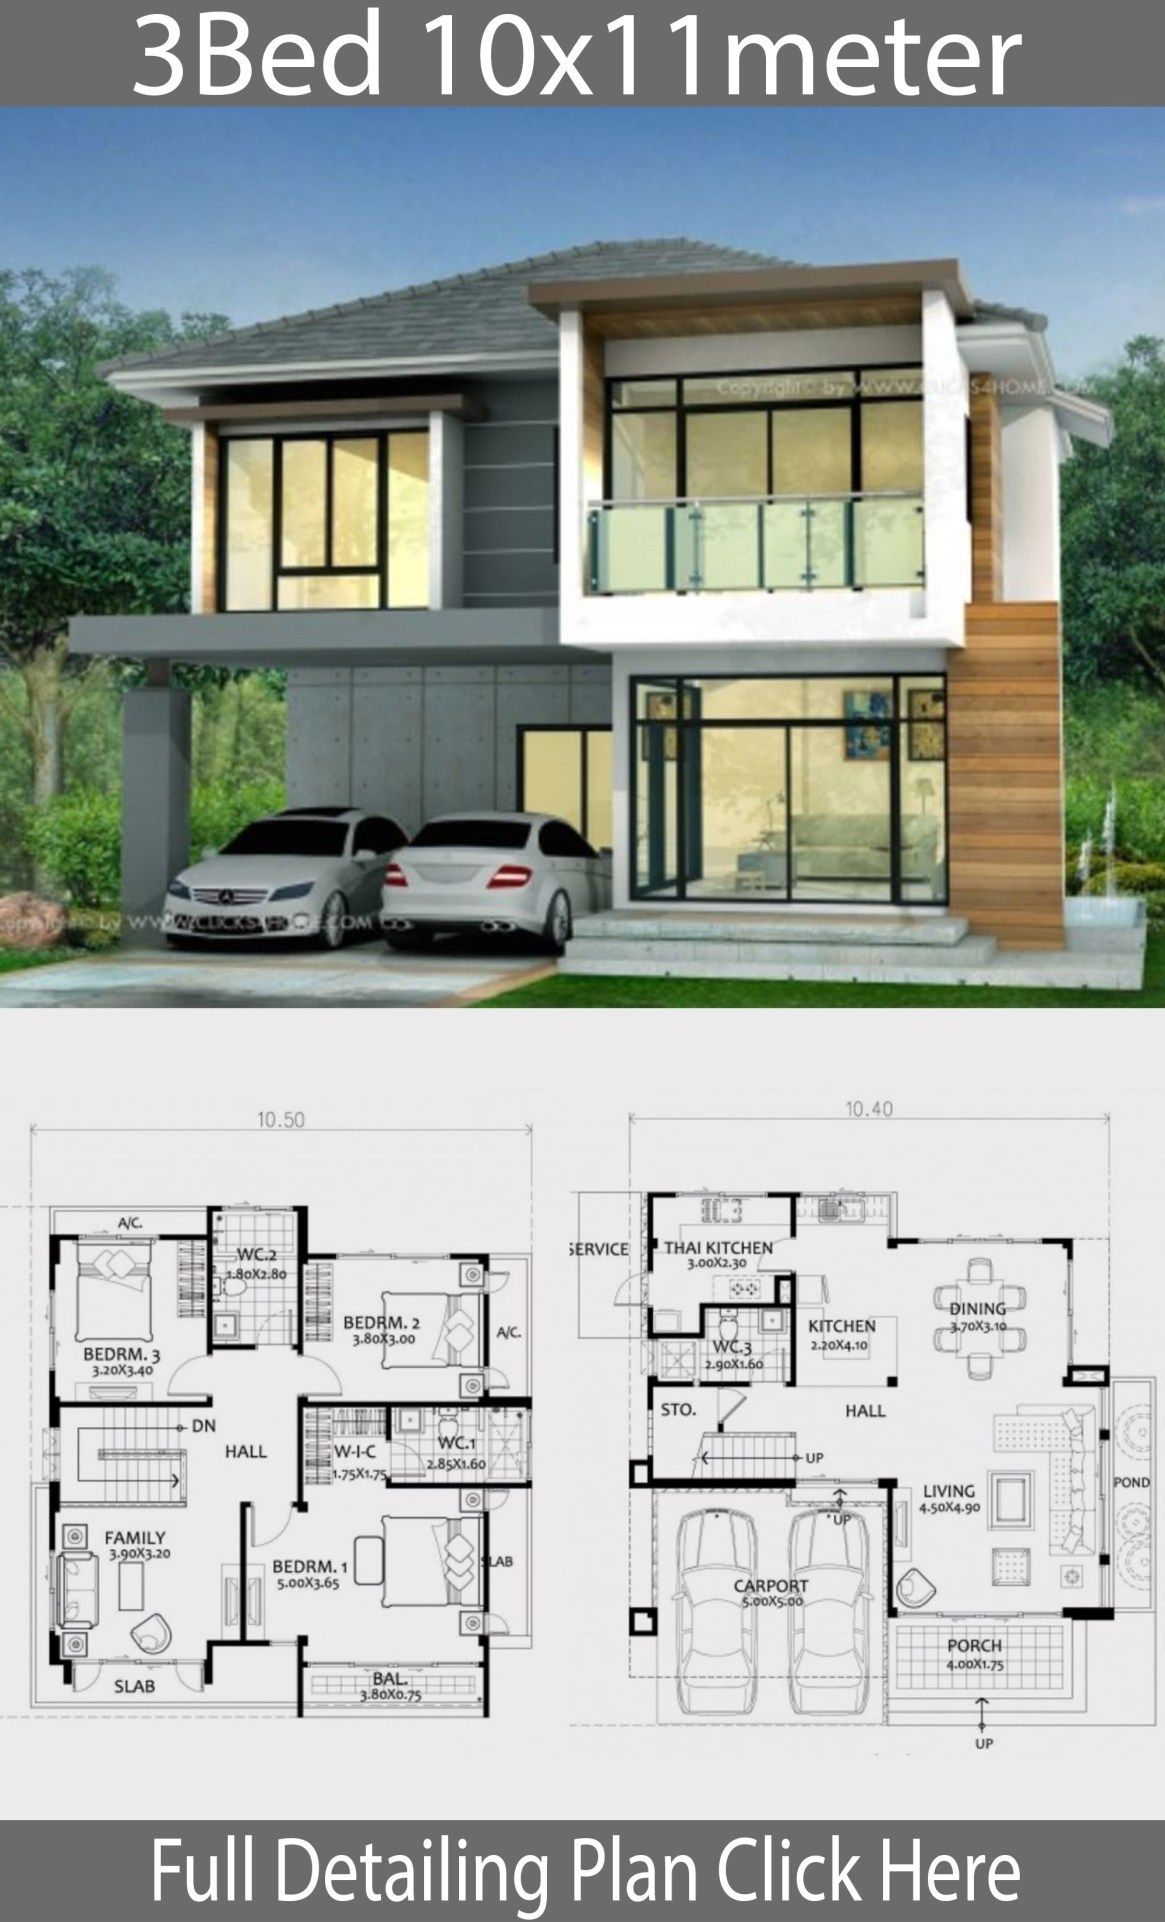 Home Design Plan 10x11m With 3 Bedrooms Home Design With